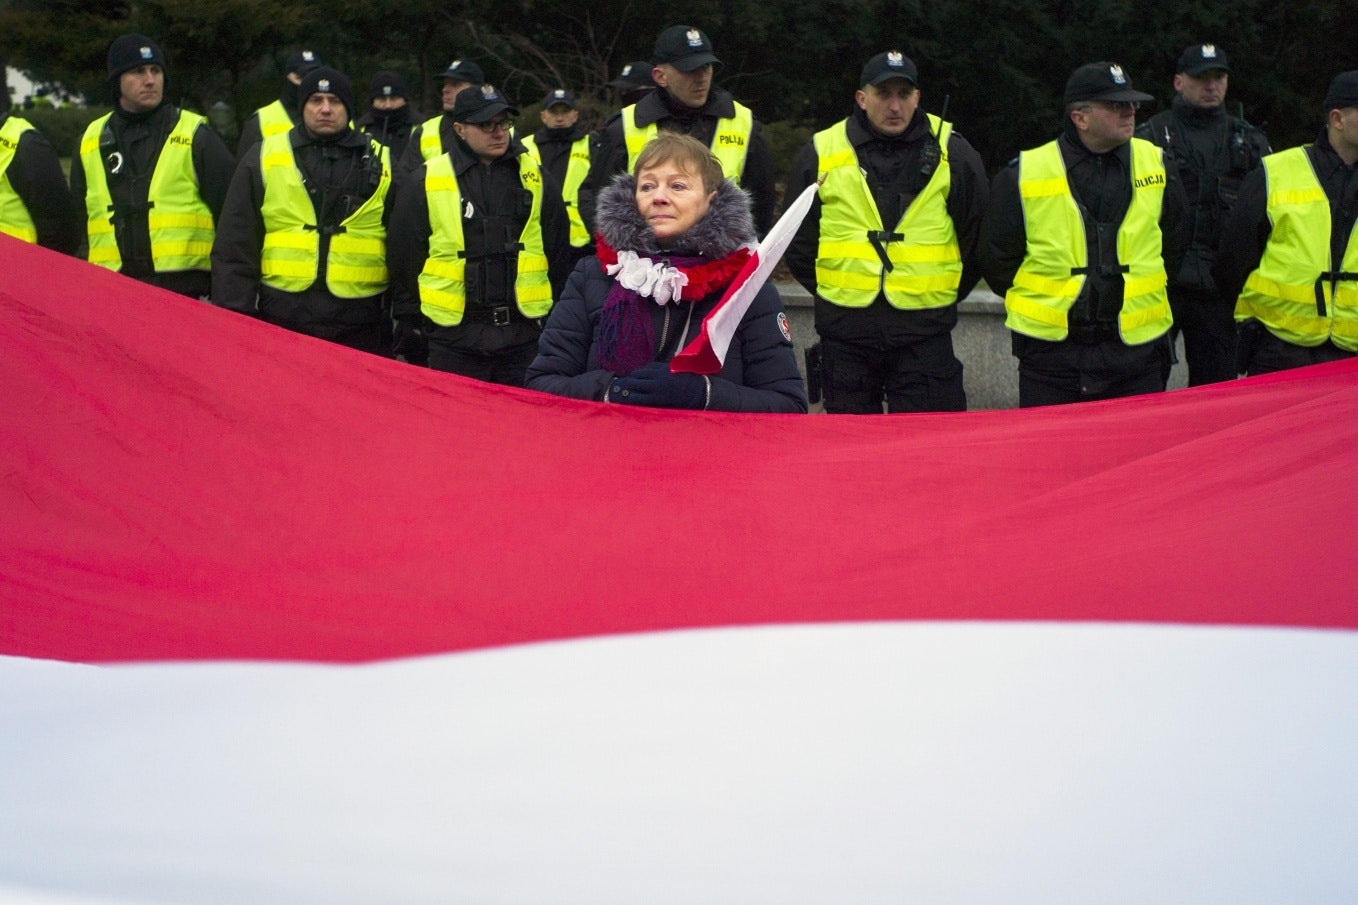 A large Polish flag in front of a row of police